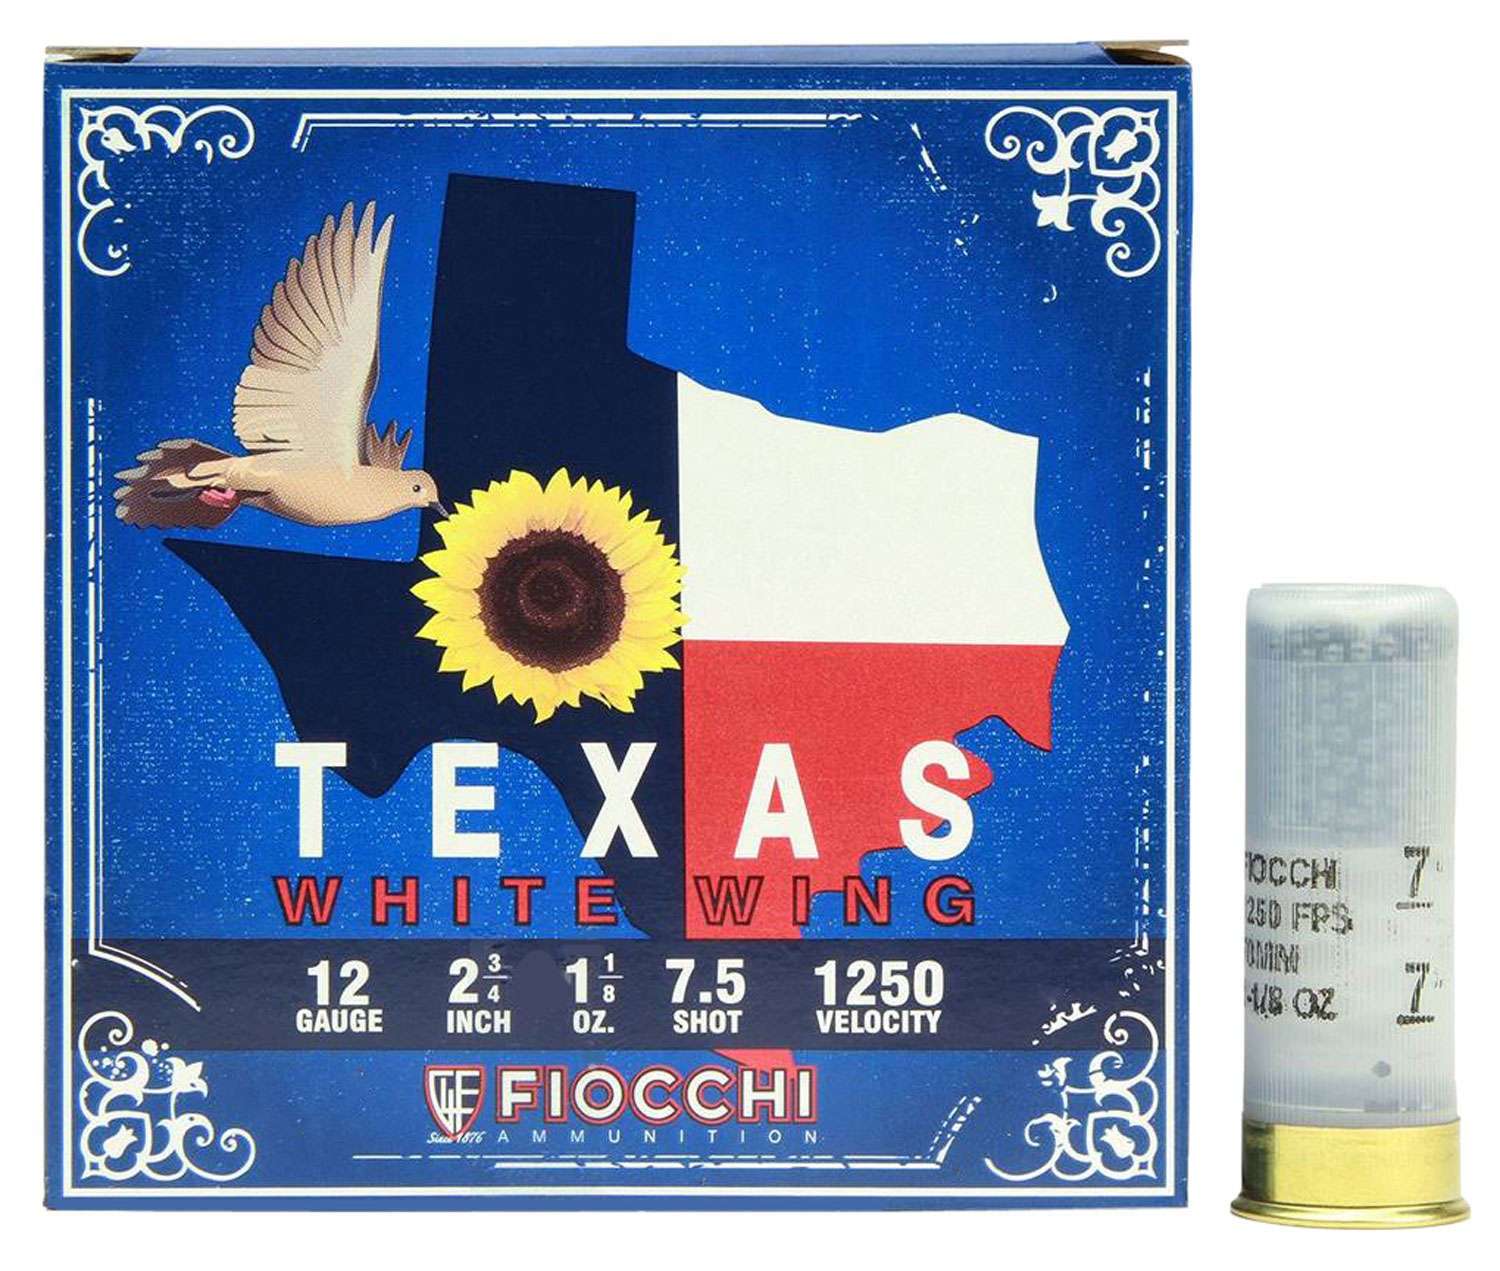 Fiocchi 20TWW75 Texas White Wing Dove Loads  20 Gauge 2.75